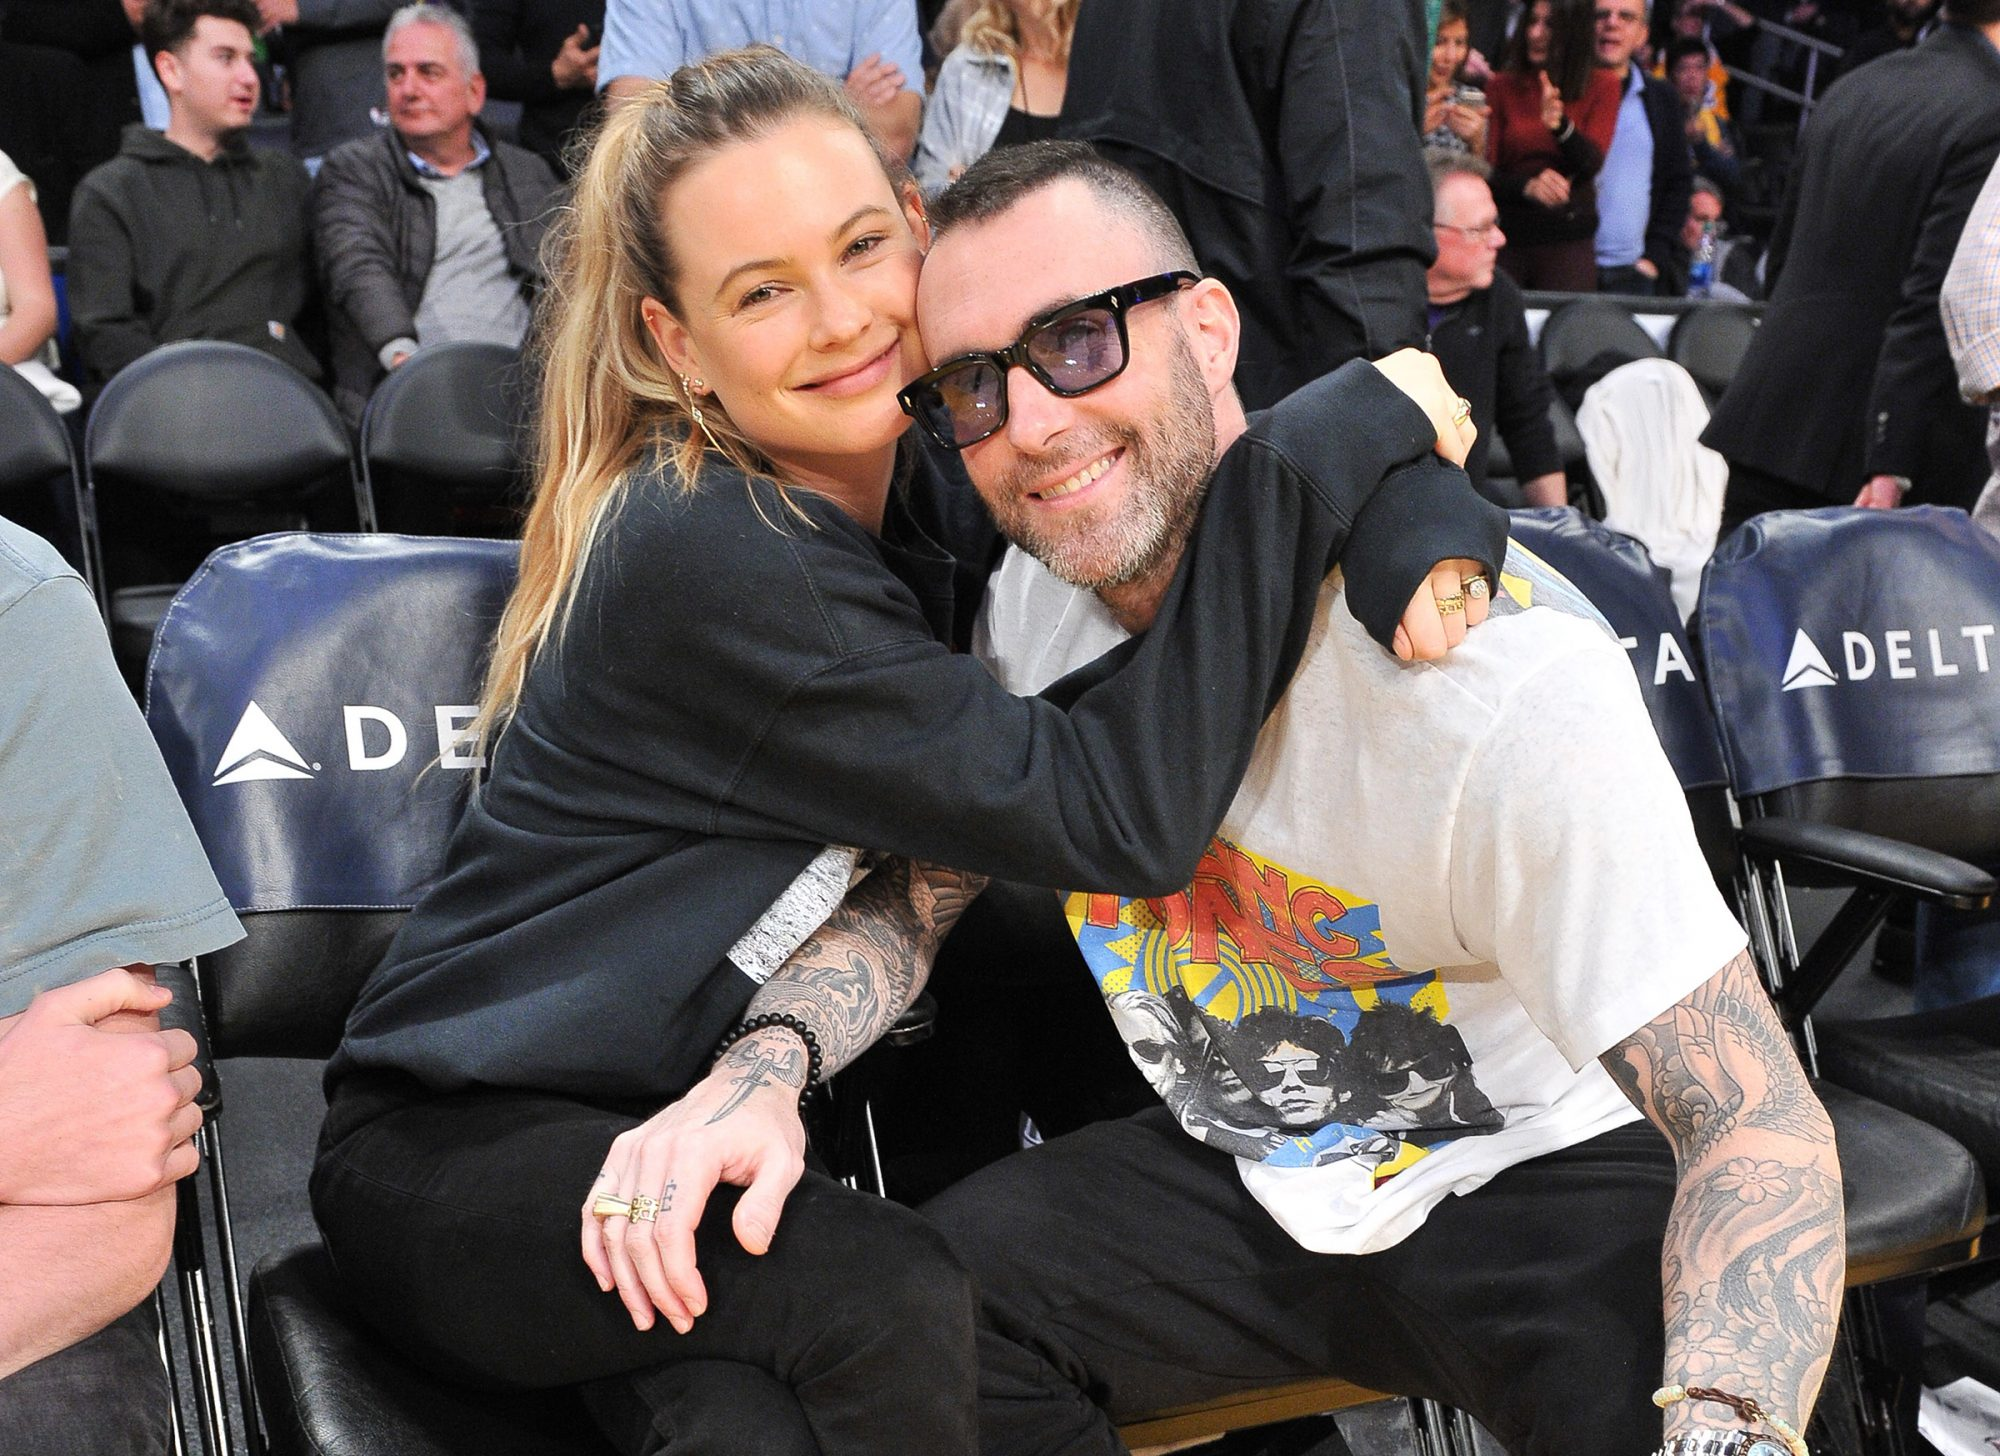 Adam Levine and Behati Prinsloo attend a basketball game between the Los Angeles Lakers and the Dallas Mavericks at Staples Center on December 01, 2019 in Los Angeles, California